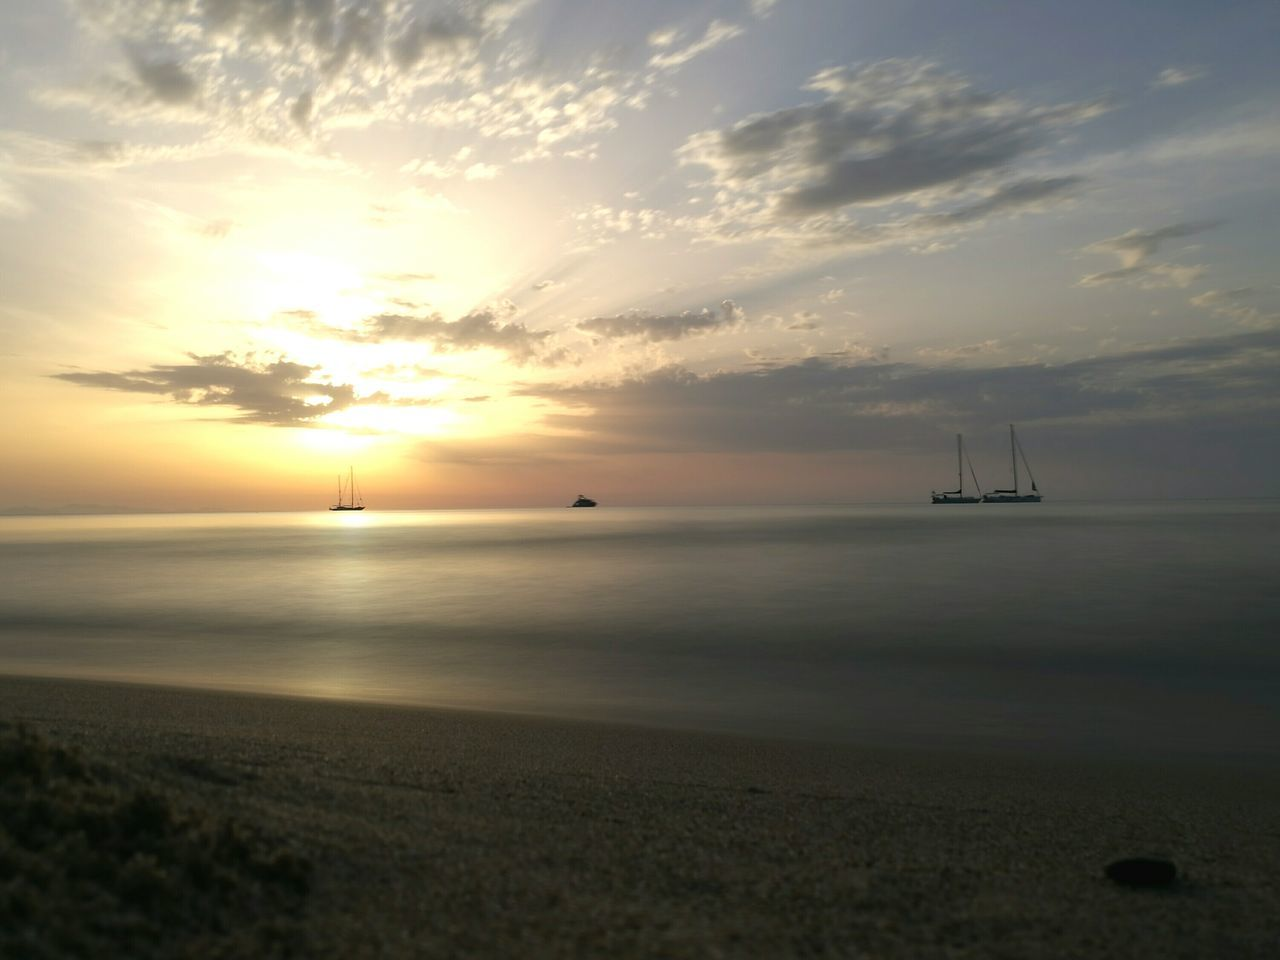 My Year My View Sea Sunset Horizon Over Water Beauty In Nature Water Nature Day Tramonto Nautical Vessel Outdoors Scenics Landscape Beach Sailing Ship Cloud - Sky No People Sailboat Sky Yachting